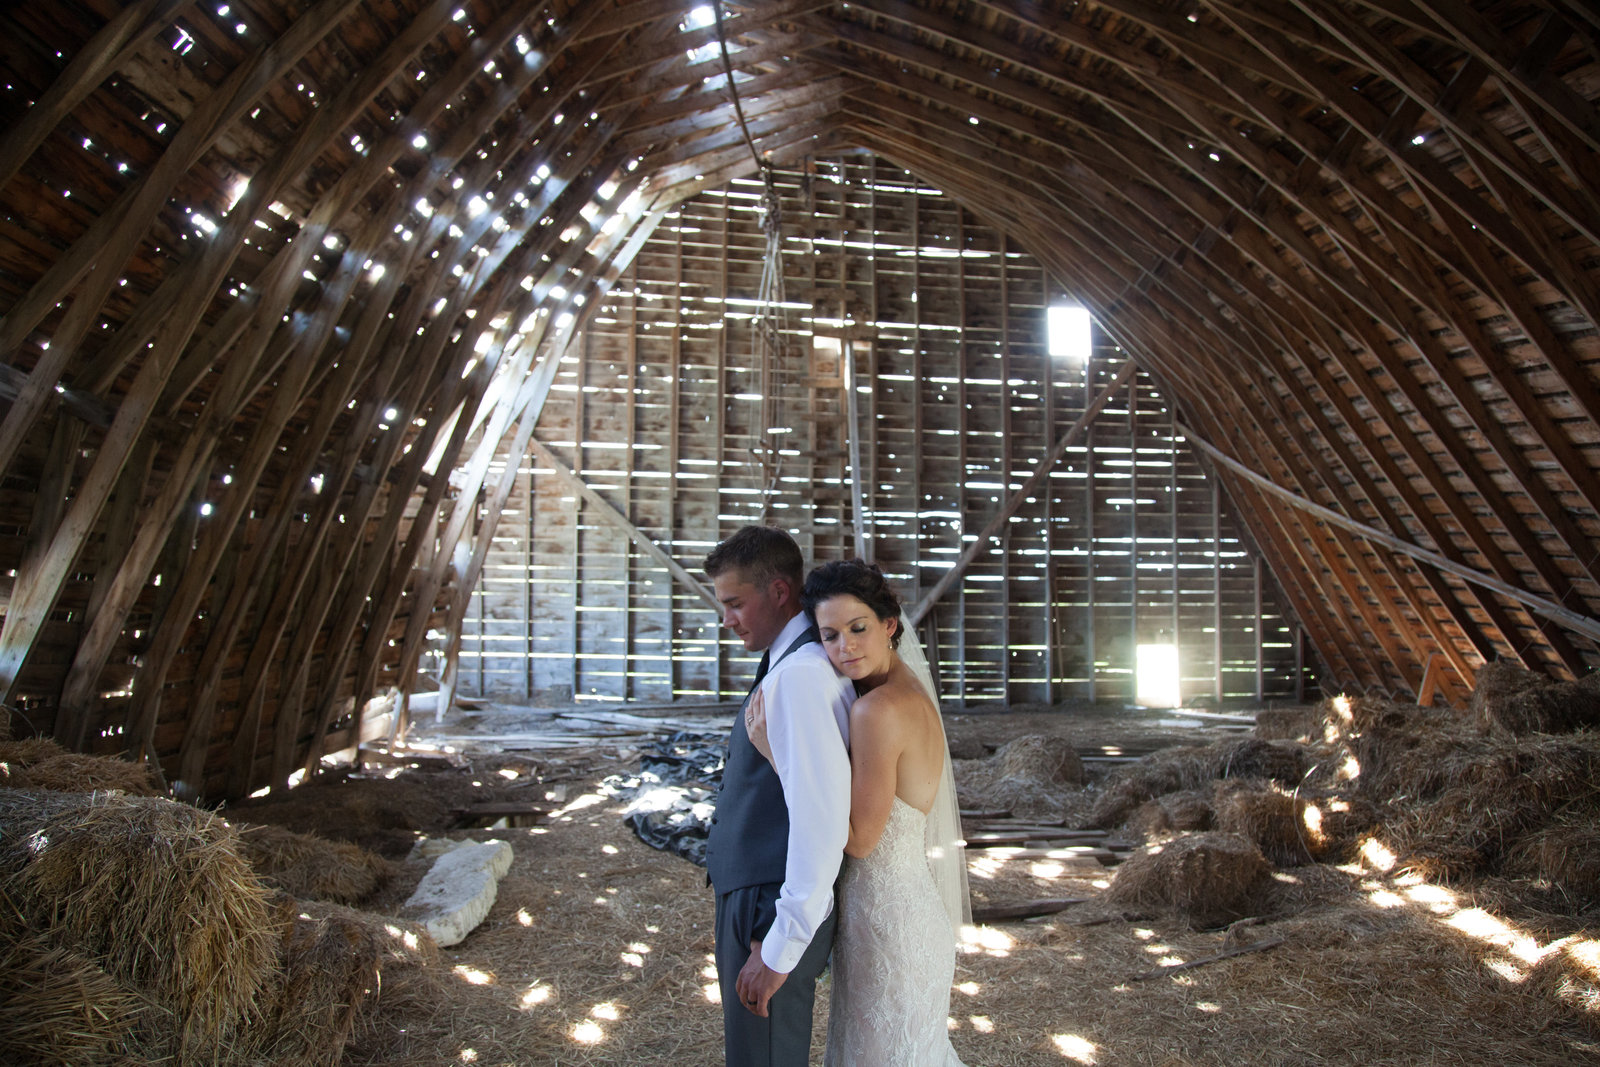 Bride and groom in barn, Saskatchewan Wedding Photogrpaher